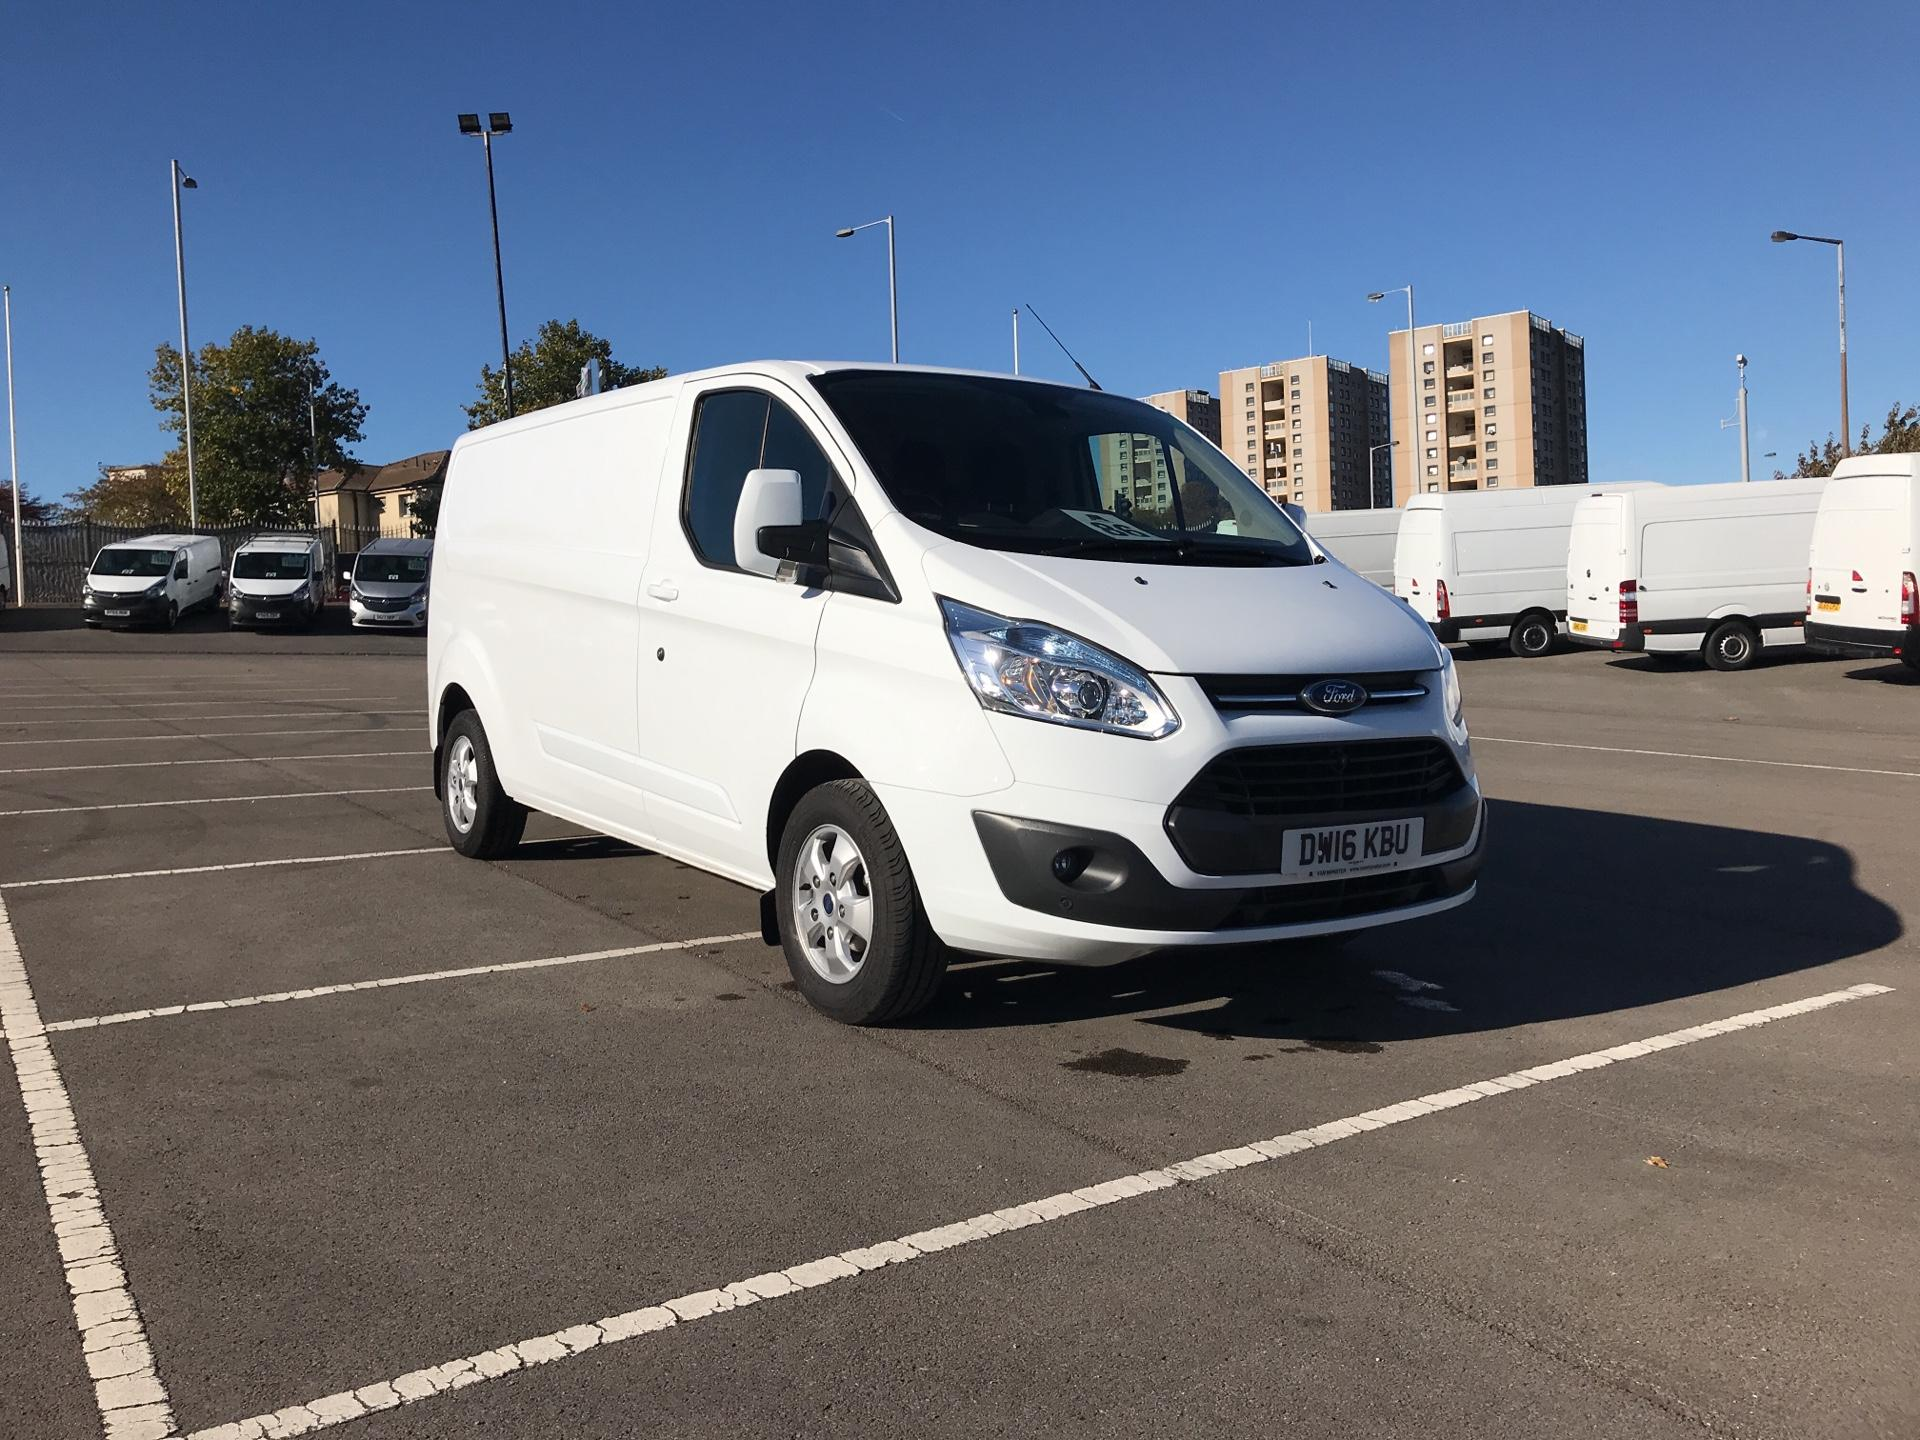 2016 Ford Transit Custom 2.2 Tdci 125Ps Low Roof LWB Limited Van EURO 6 (DW16KBU)